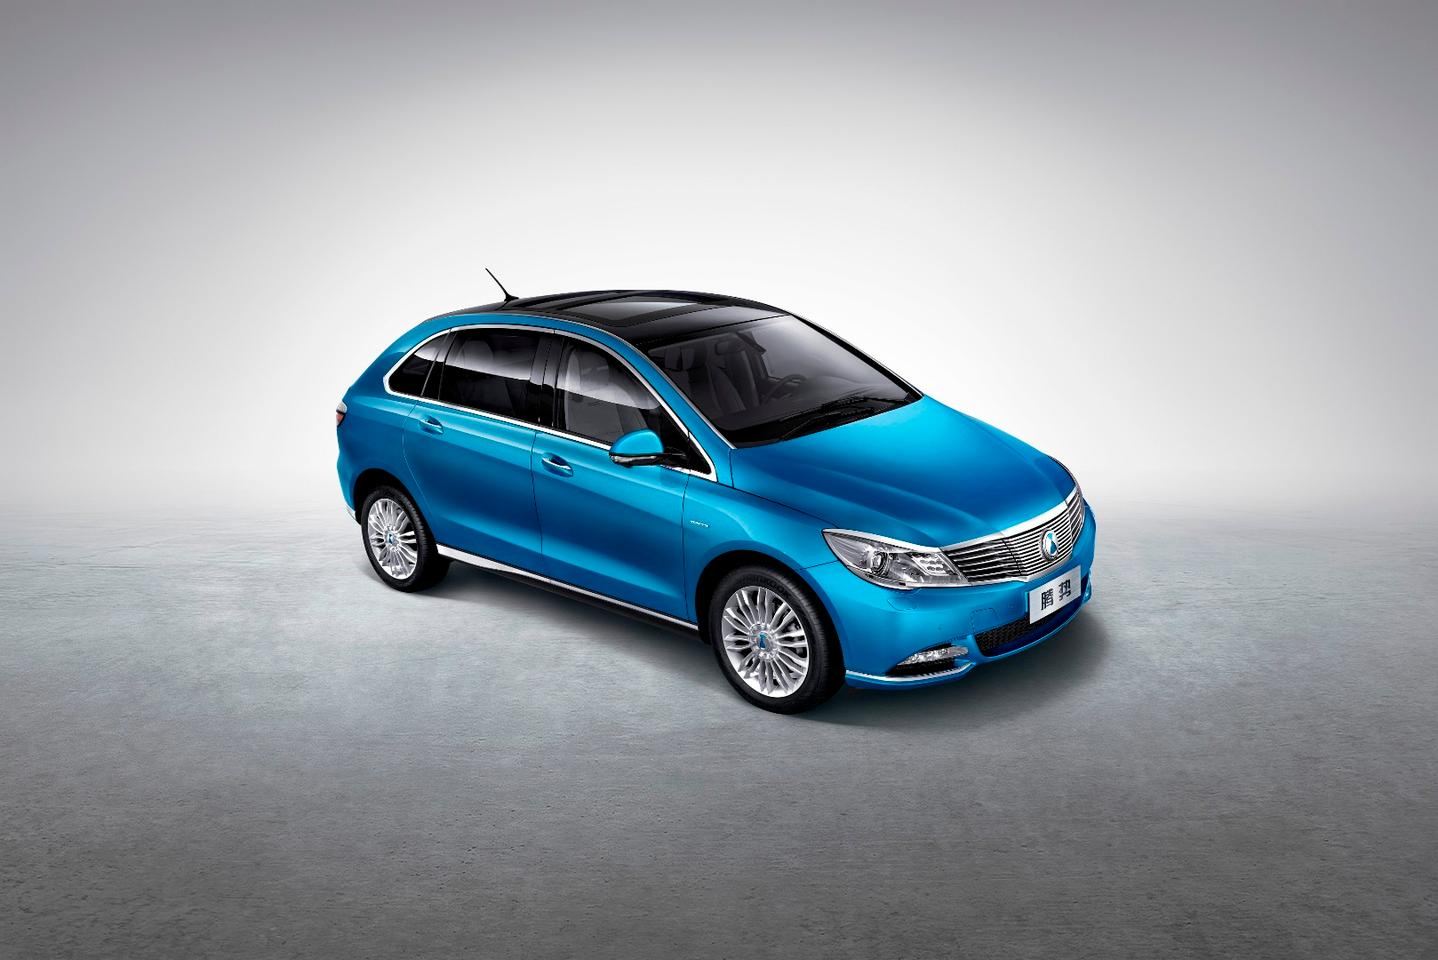 The BYDDenza 400 has an impressive range for a compact EV